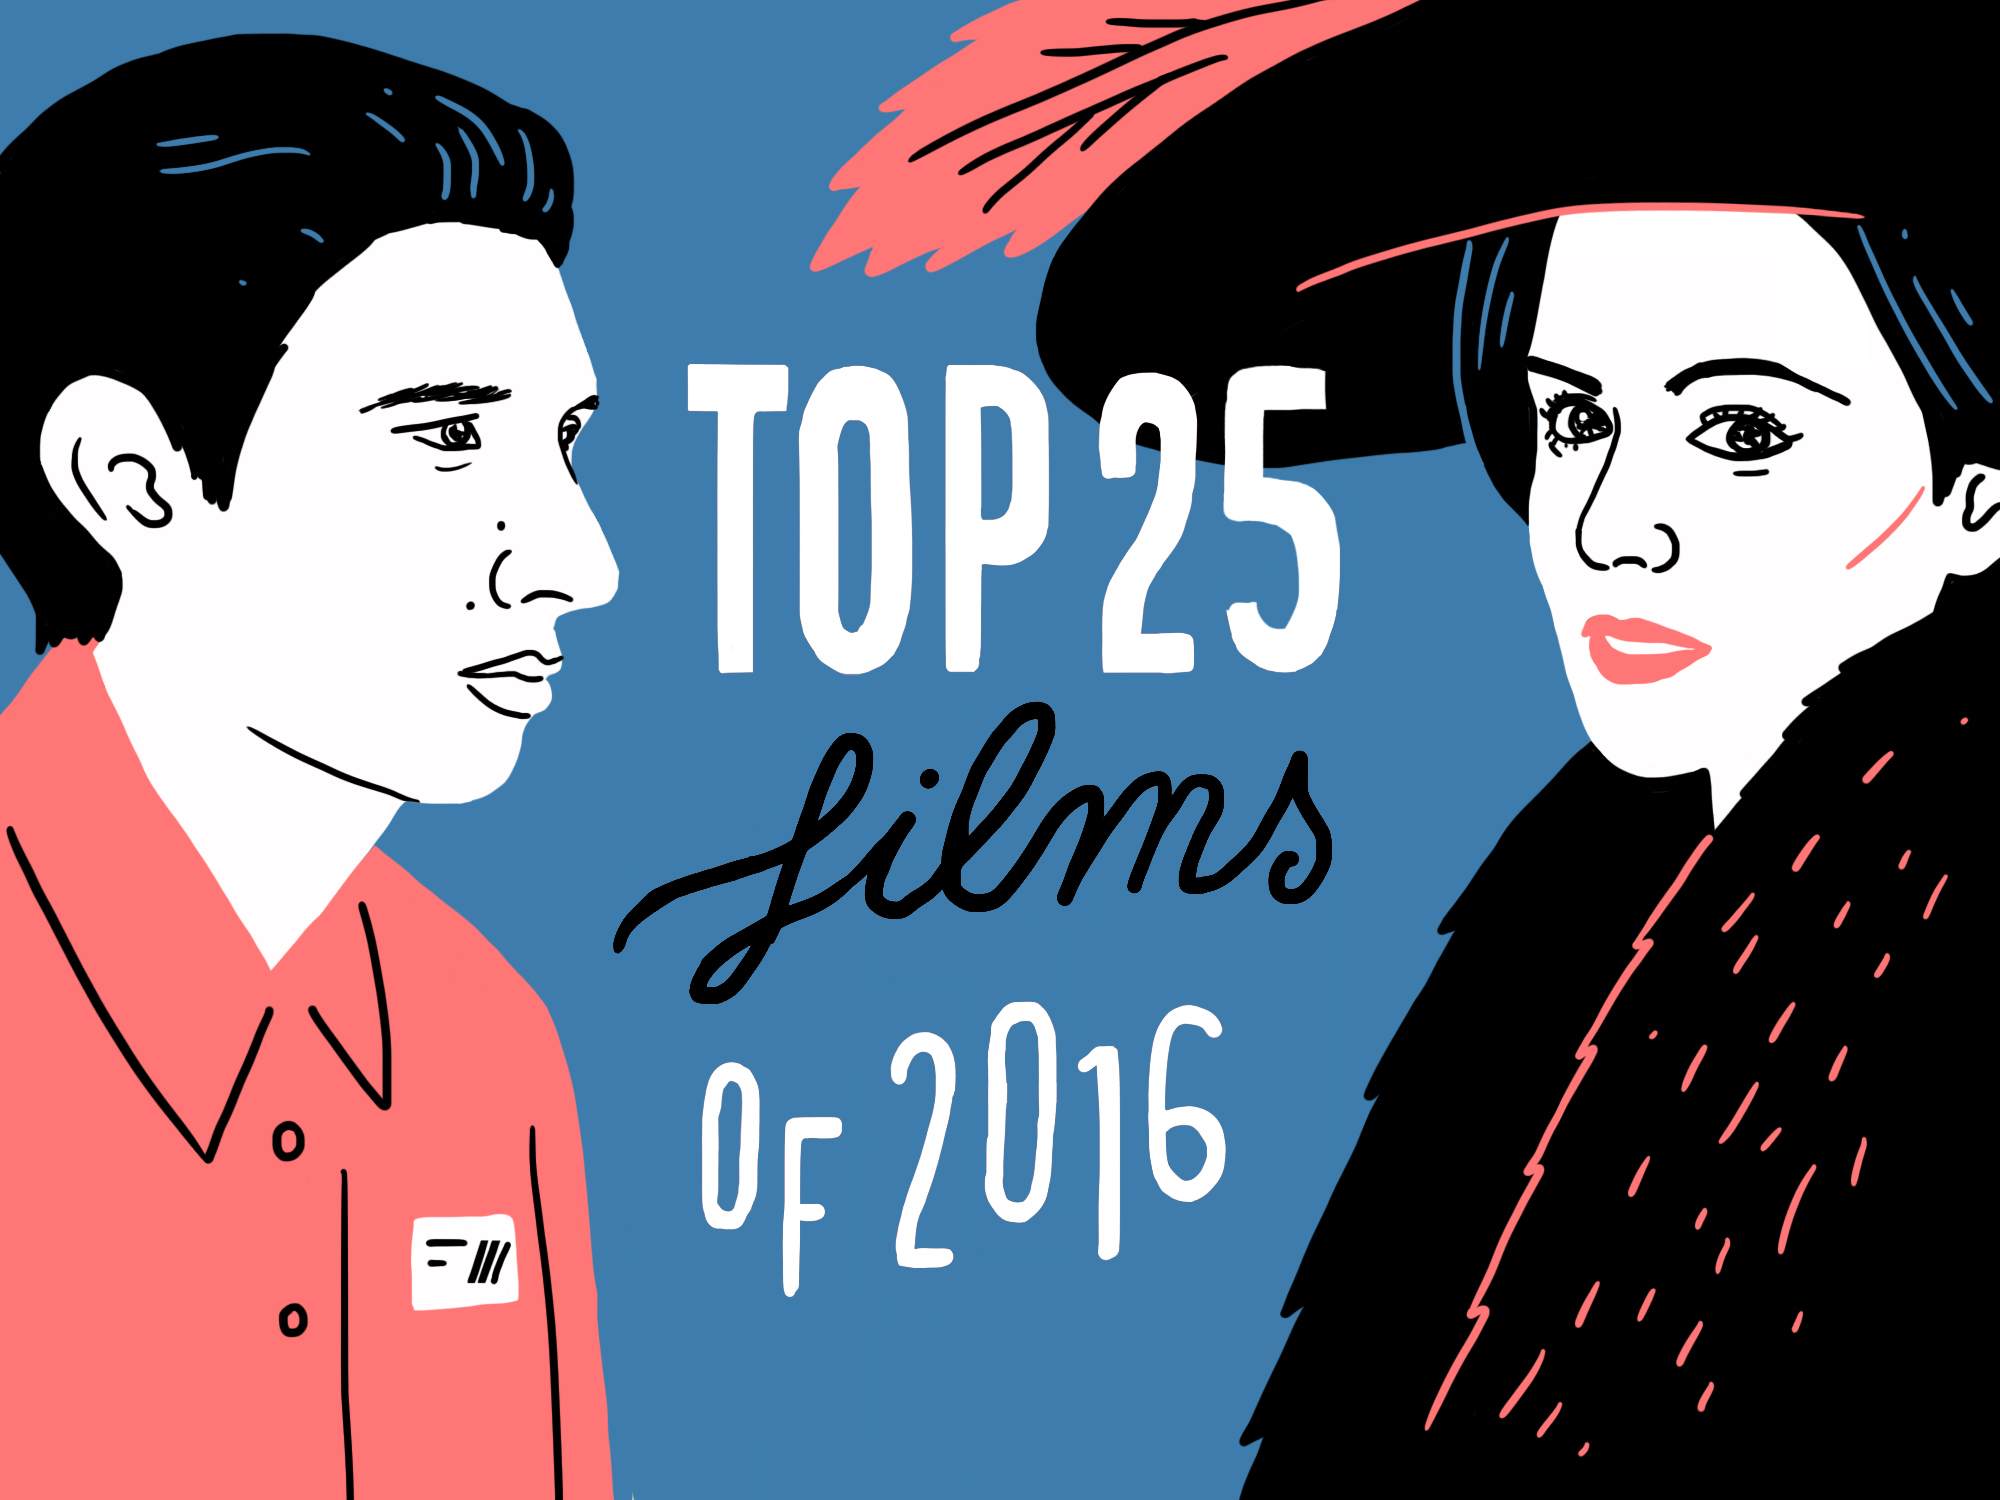 The 25 best films of 2016